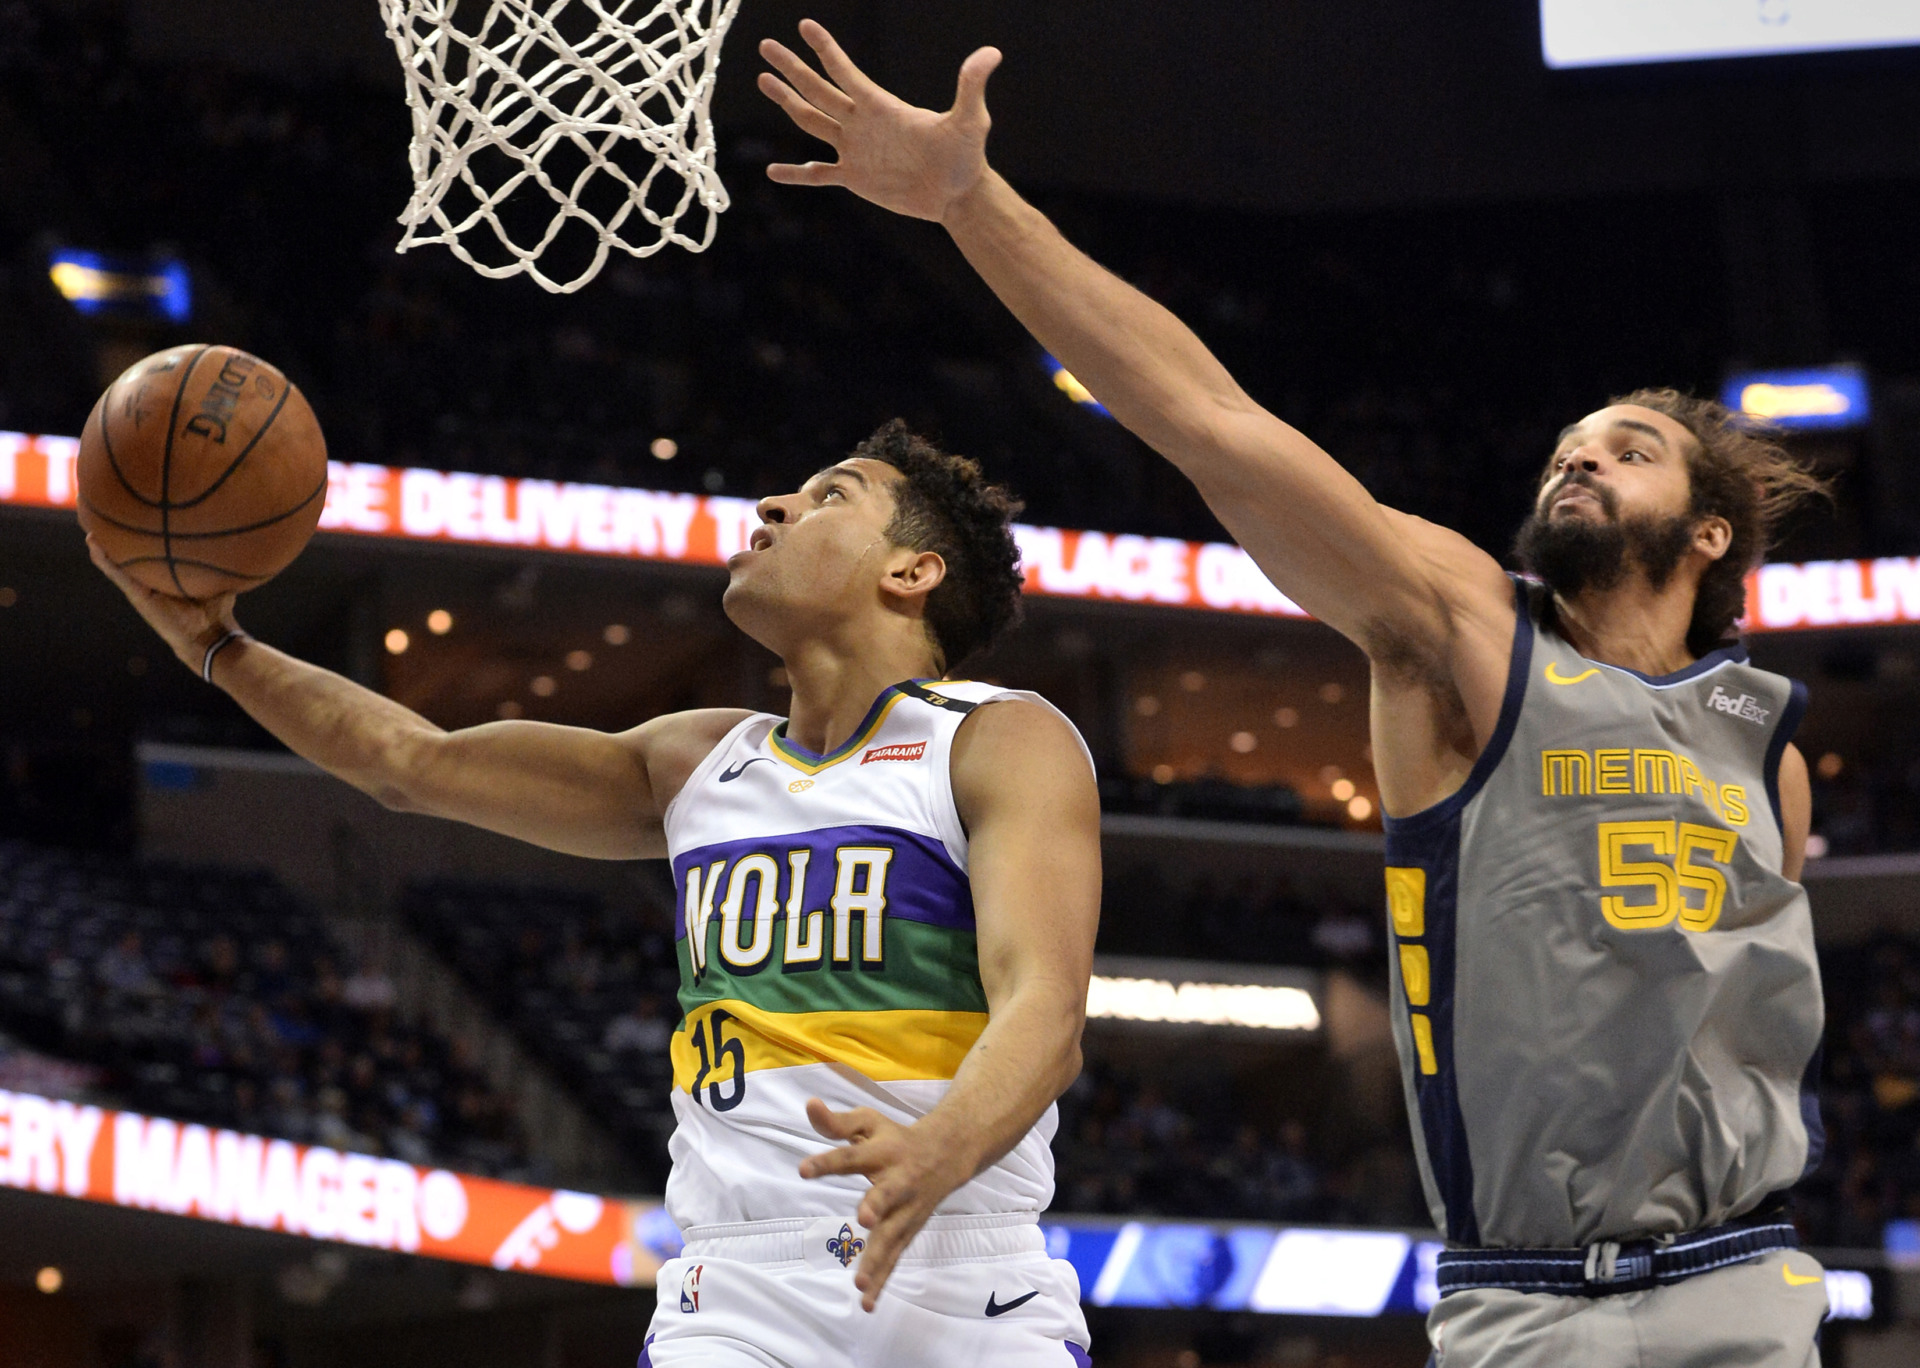 <strong>New Orleans Pelicans guard Frank Jackson (15) shoots next to Memphis Grizzlies center Joakim Noah (55) during the first half of an NBA game Saturday, Feb. 9, 2019, in Memphis.</strong> (AP Photo/Brandon Dill)